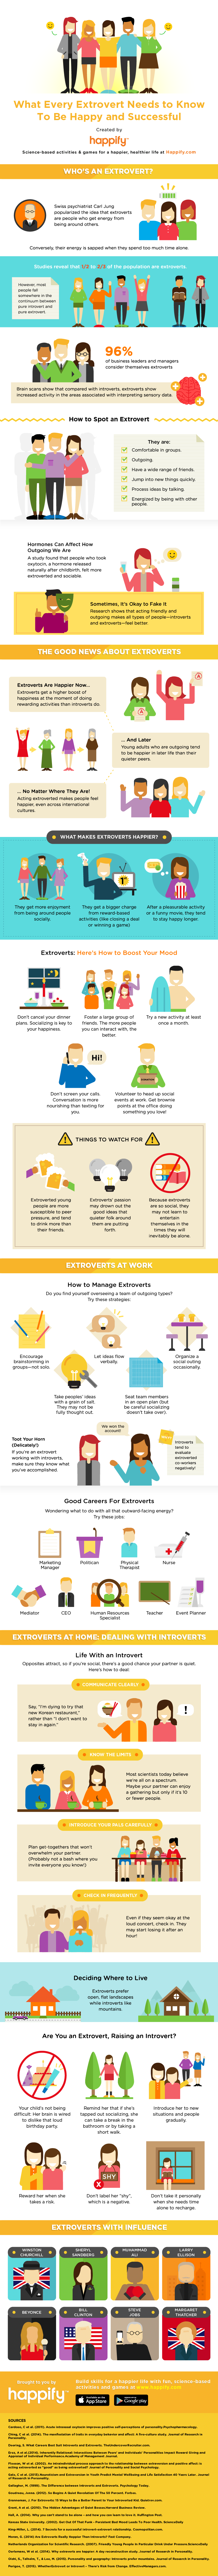 What Every Extrovert Needs to Know to be Happy & Successful